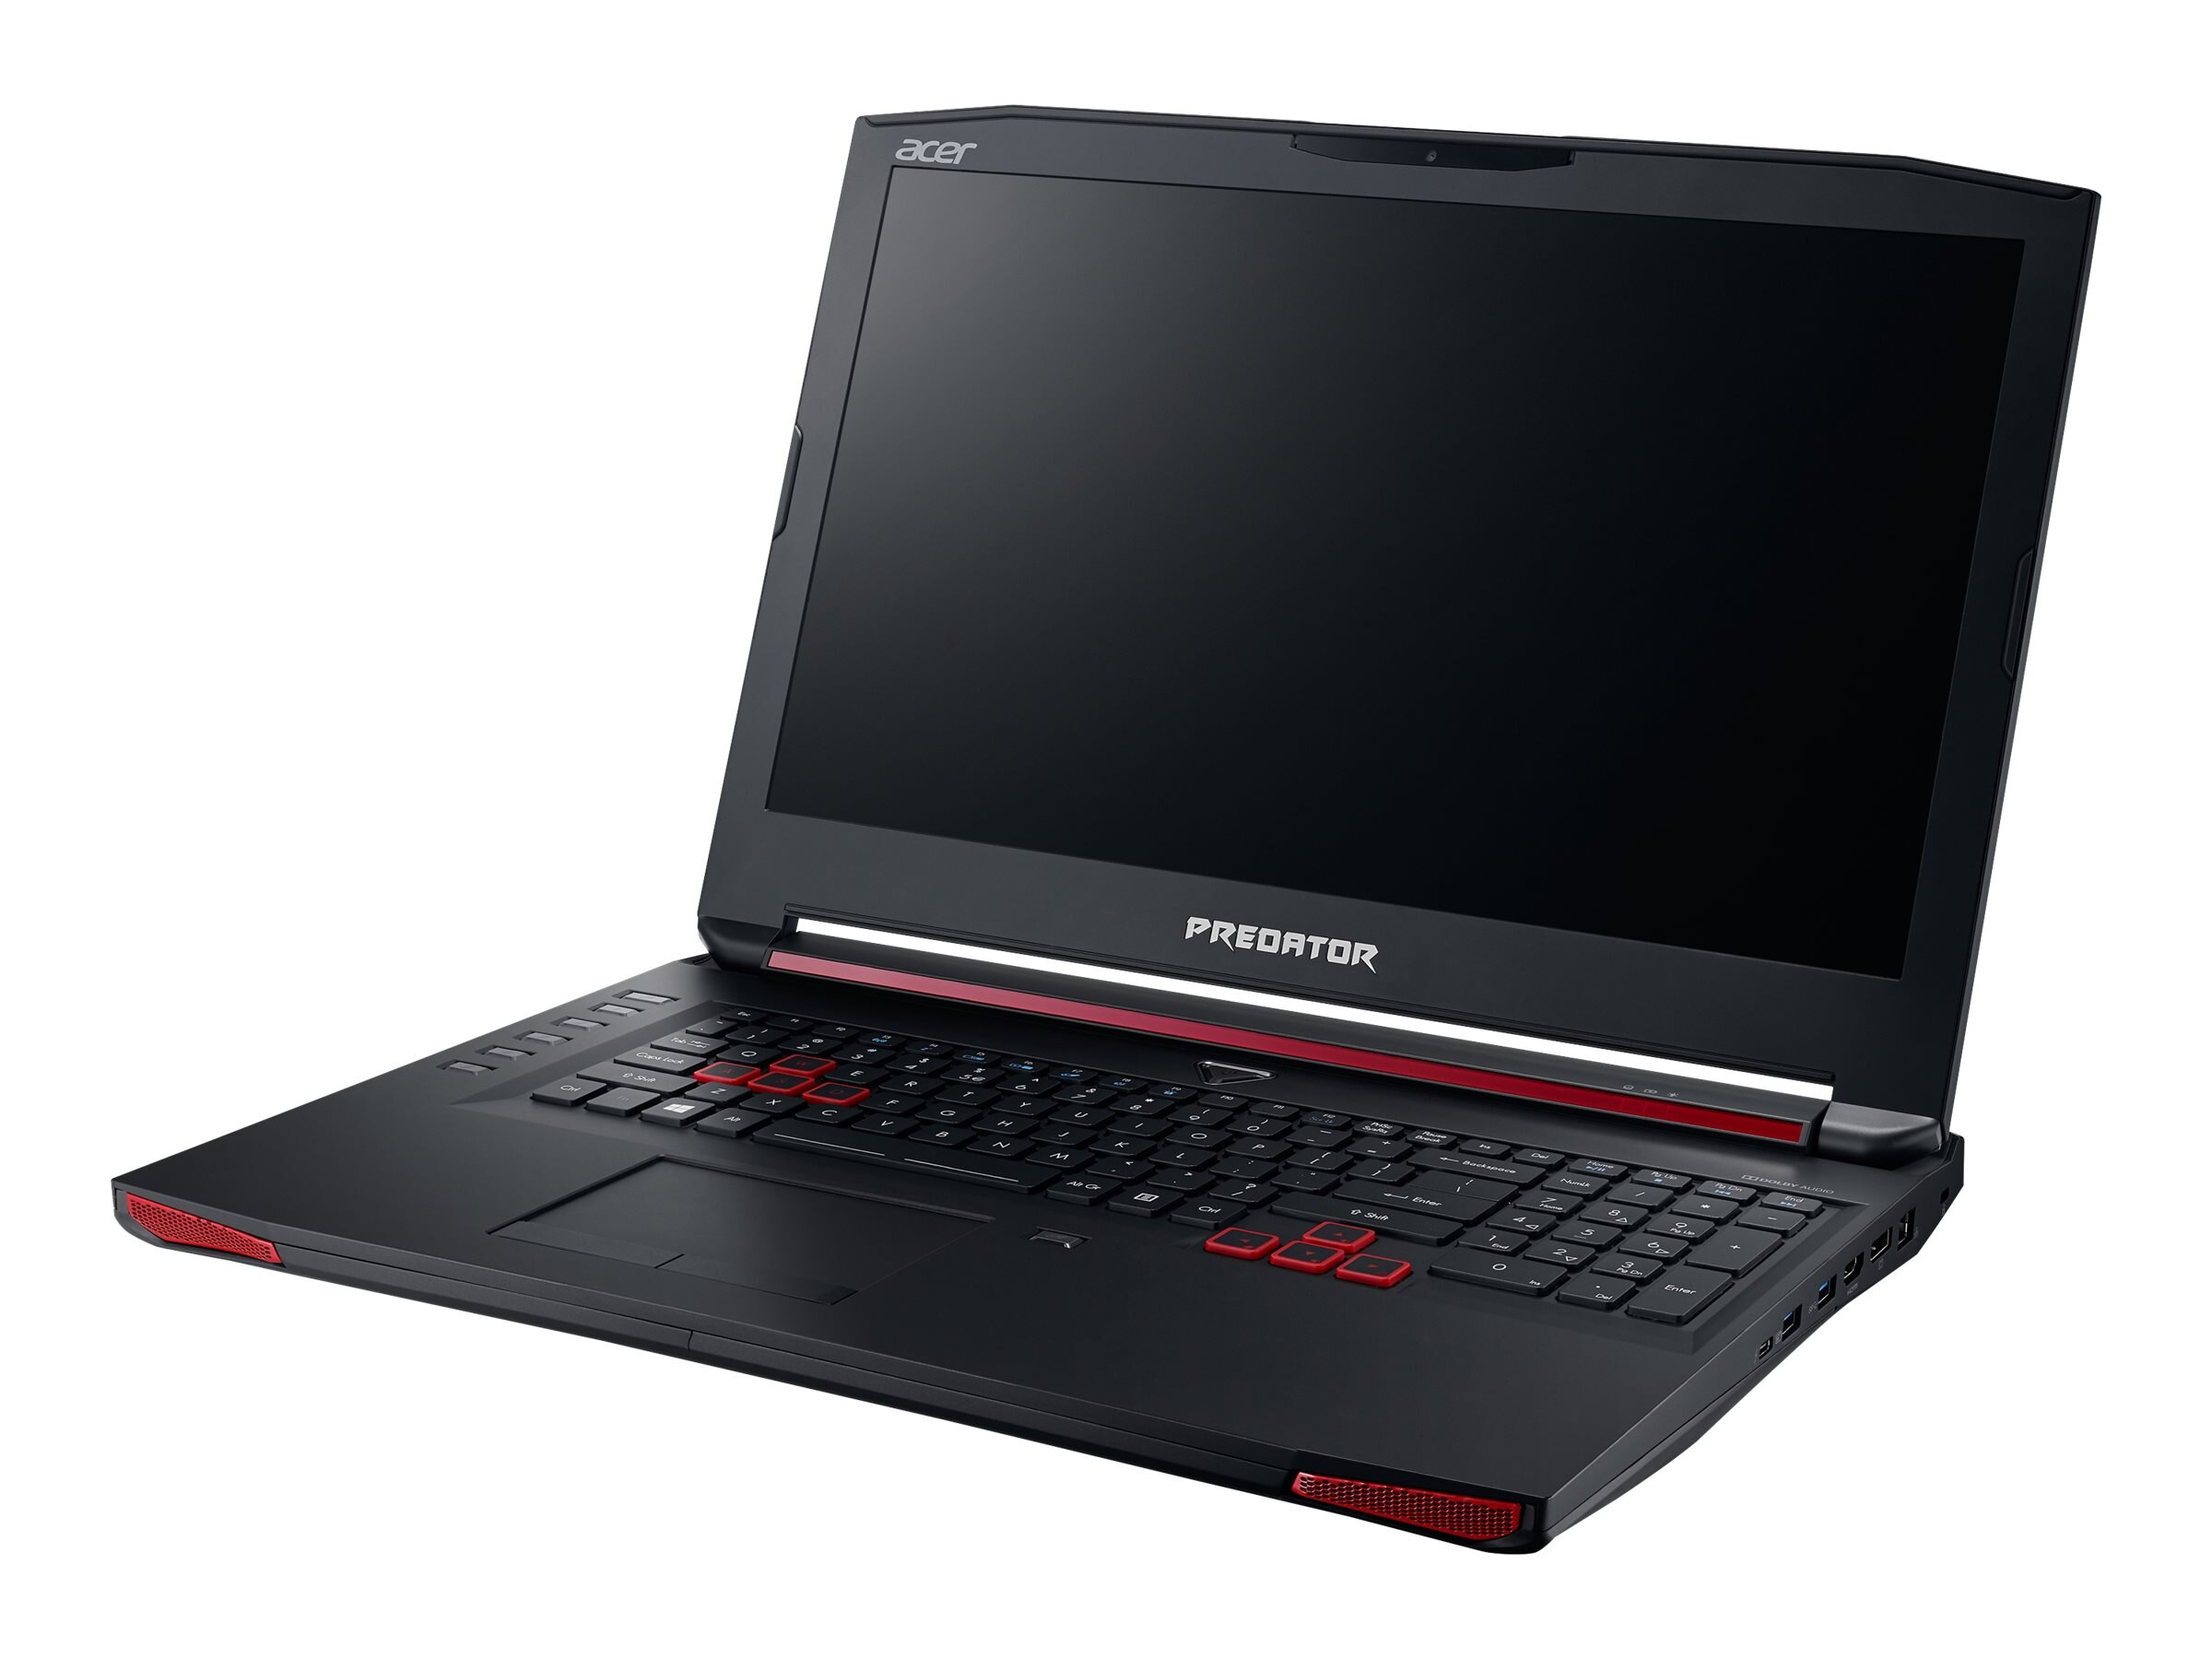 Acer Aspire Predator G9-791-707M 2.6GHz Core i7 17.3in display, NH.Q03AA.002, 31836601, Notebooks